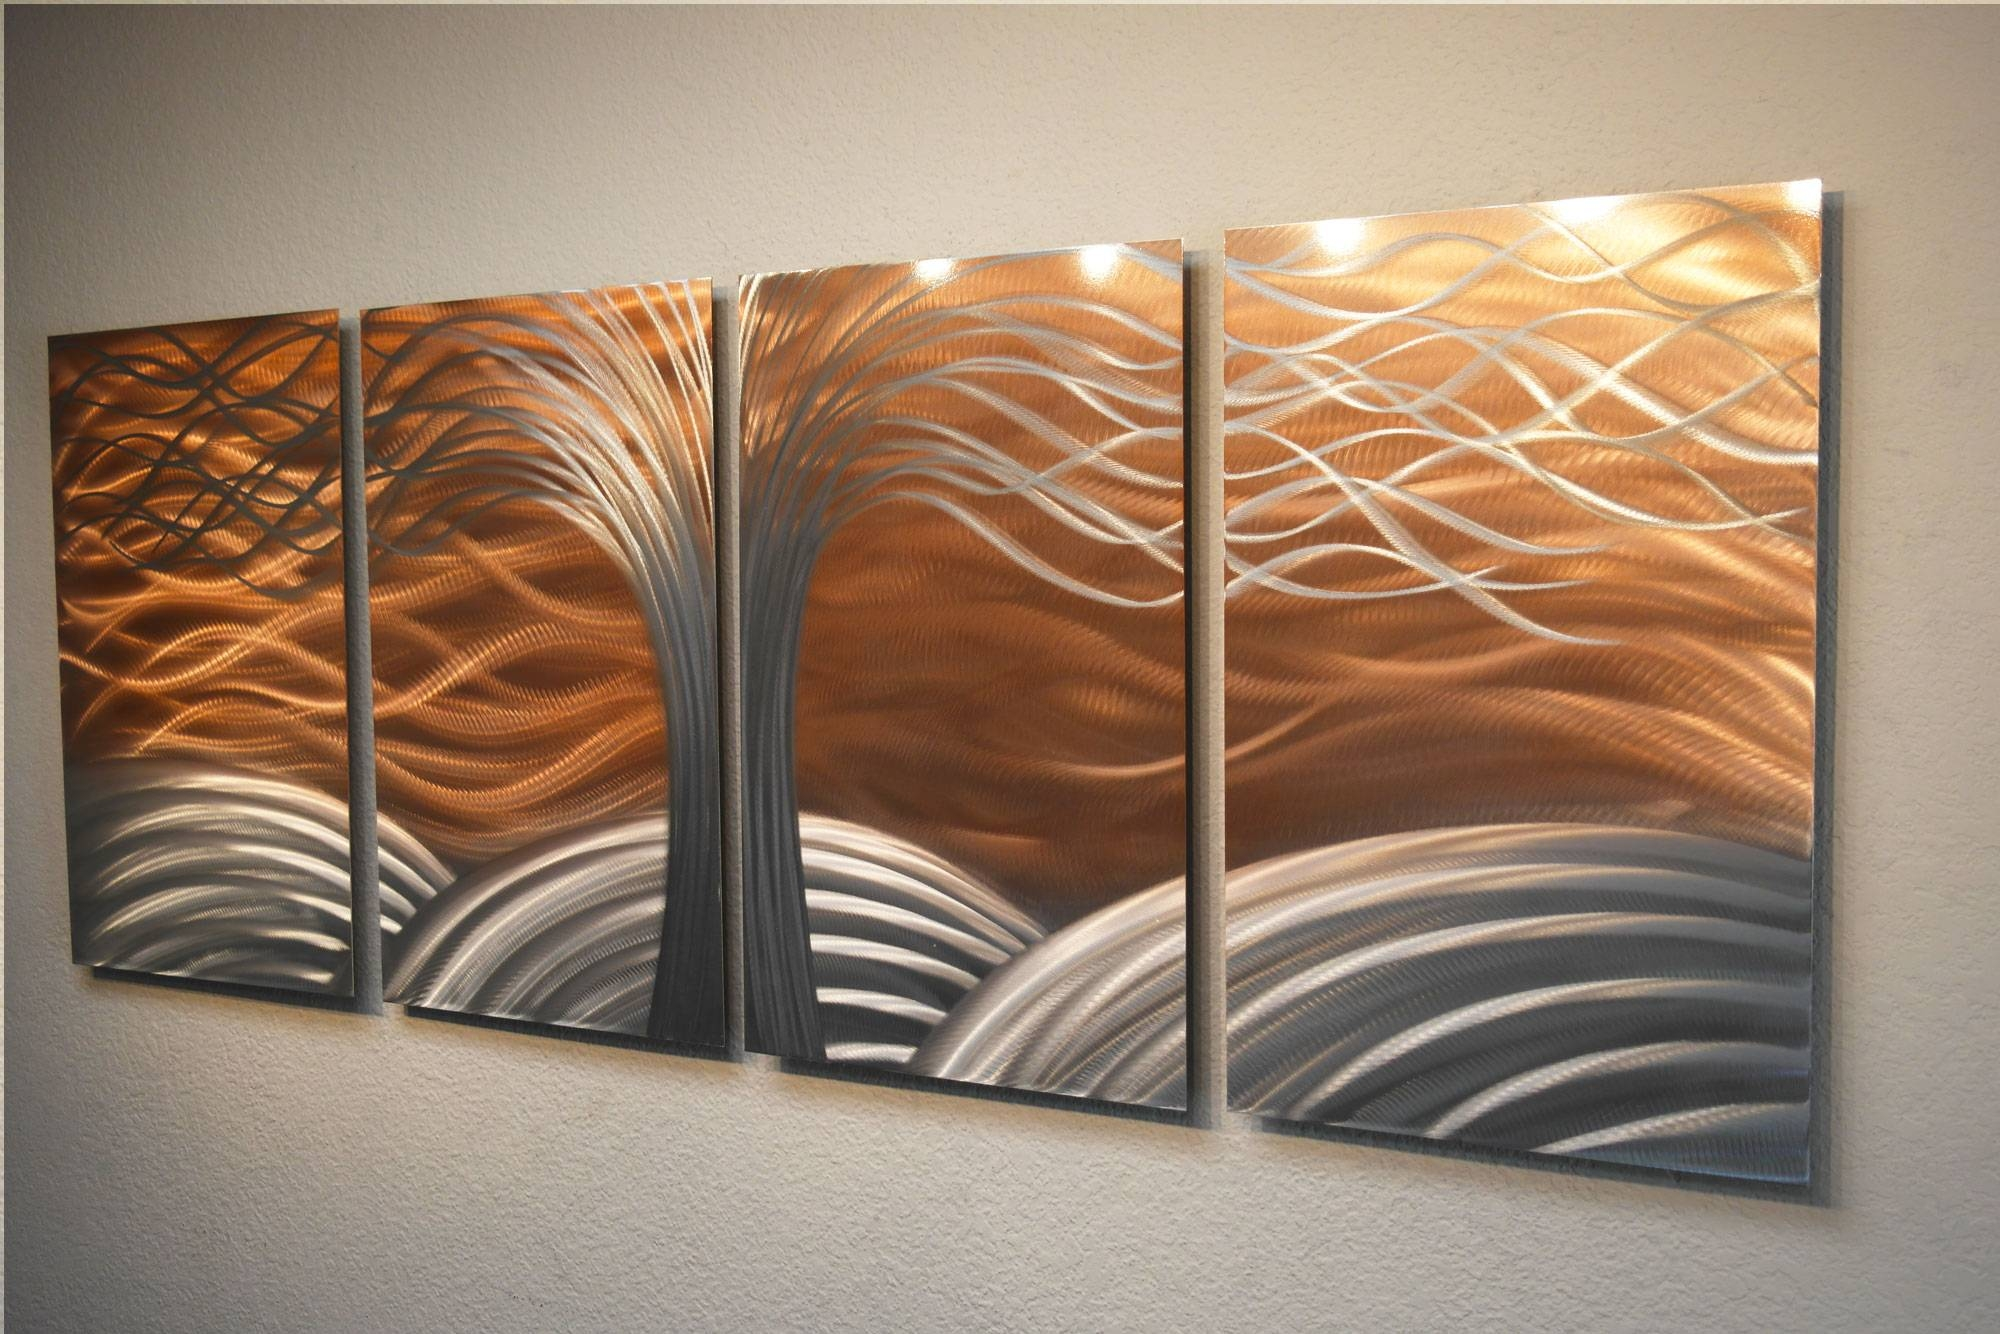 Tree Of Life Bright Copper – Metal Wall Art Abstract Sculpture With Regard To Most Recent Copper Metal Wall Art (View 15 of 20)